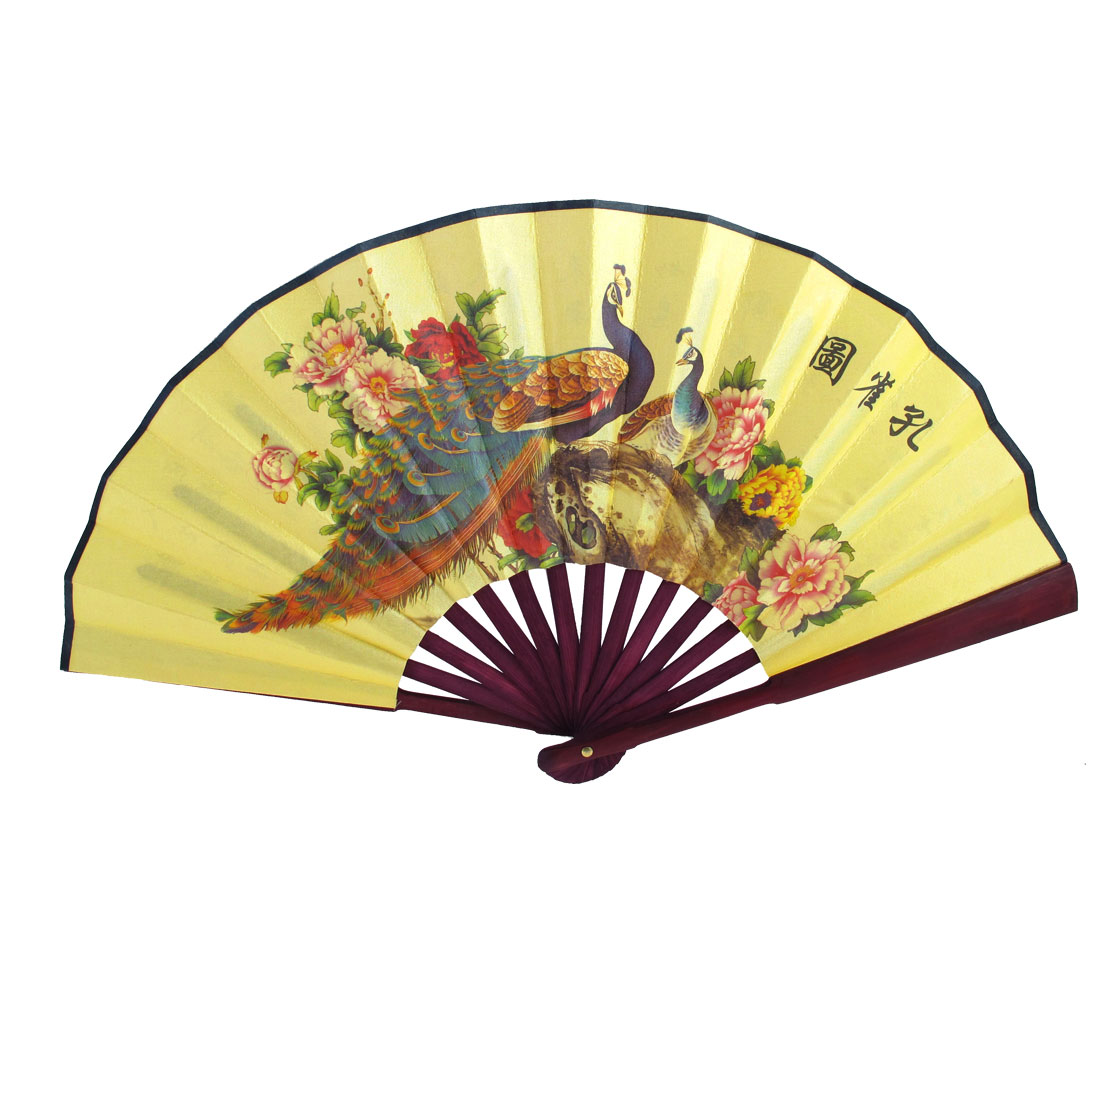 Bamboo Handle Peacock Chinese Doggerel Print Folding Hand Fan Yellow